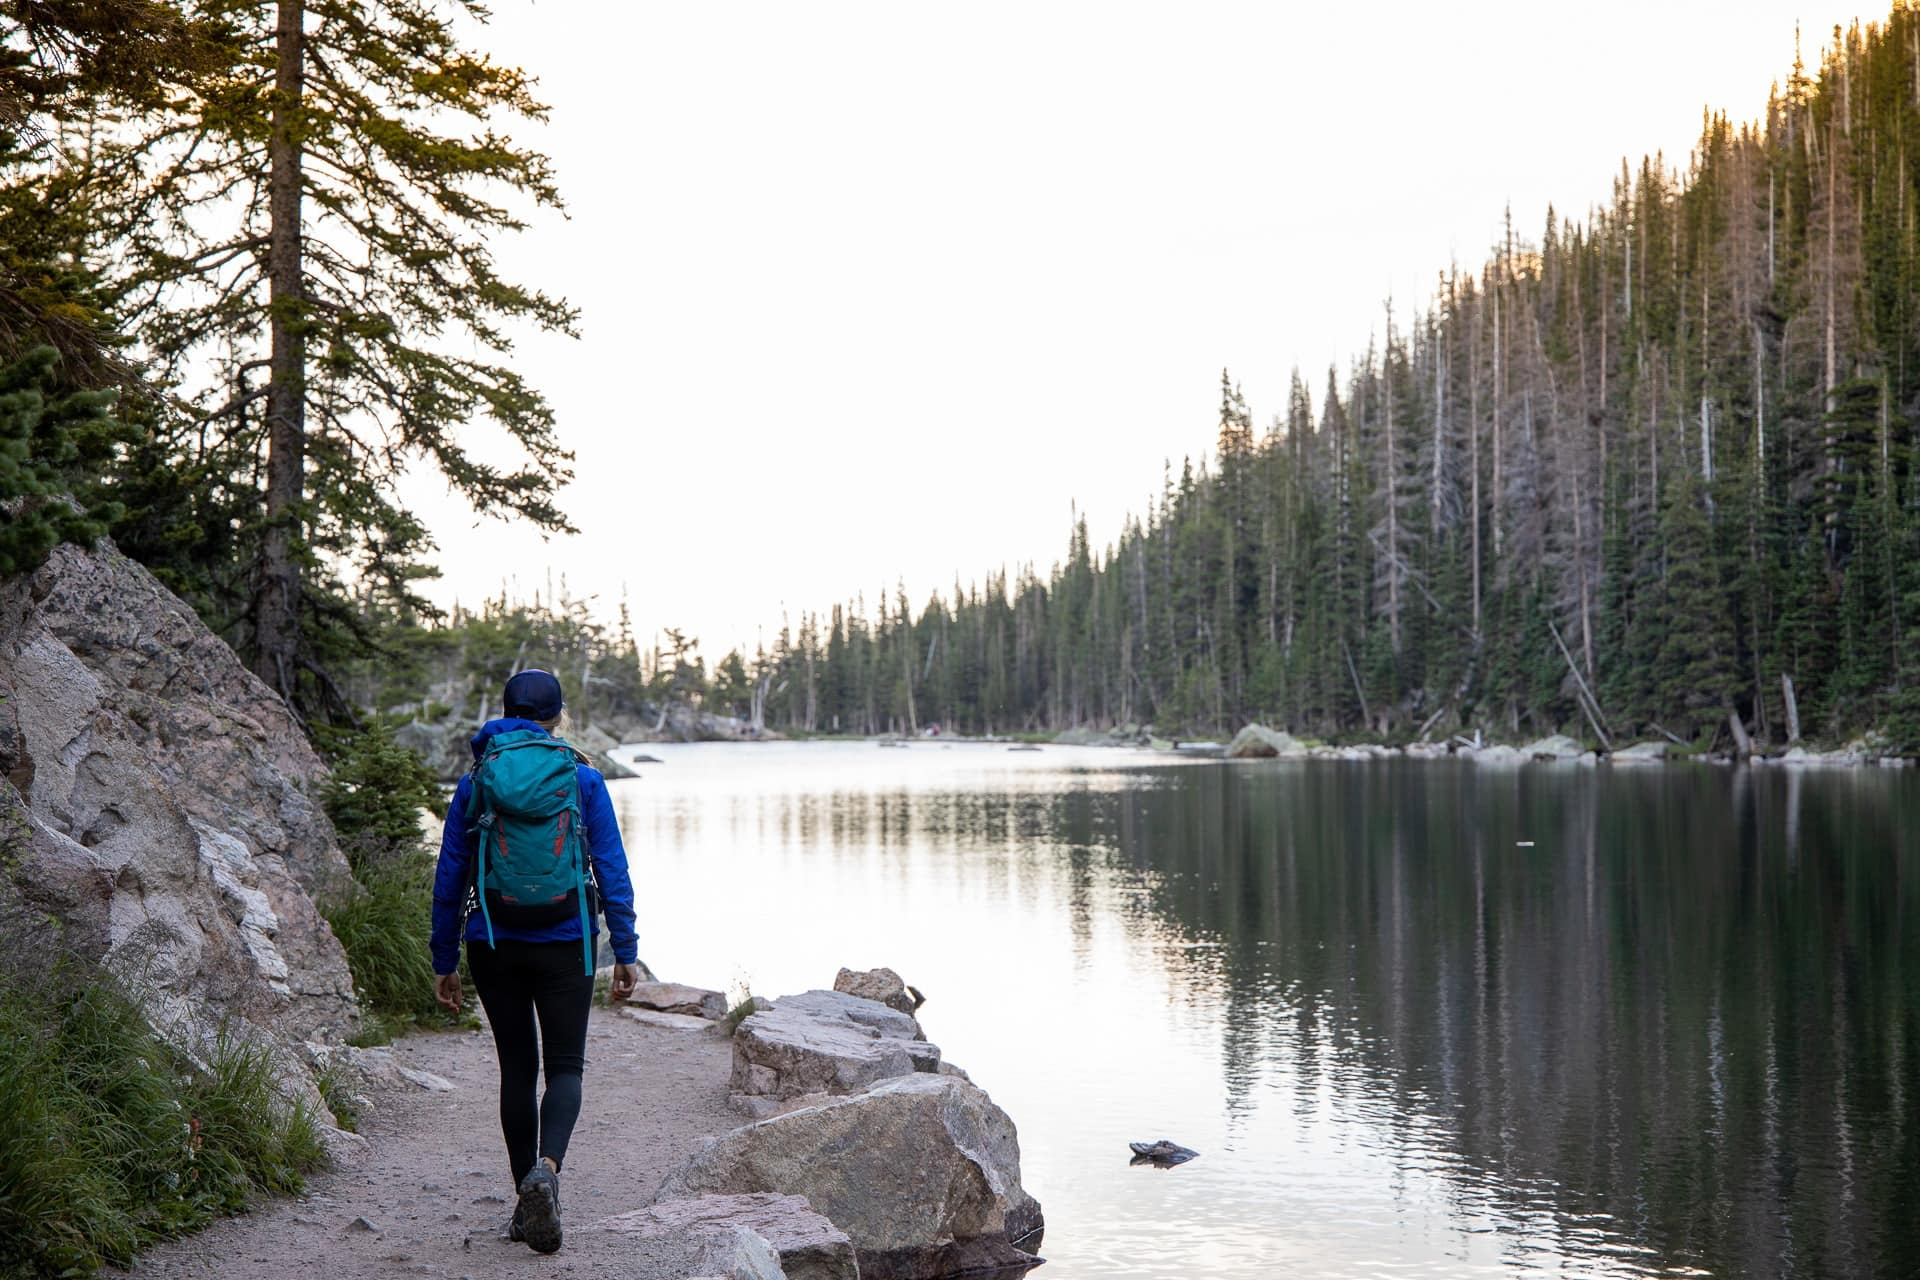 Emerald Lake Trail // Get our guide to the best day hikes in Rocky Mountain National Park including distances, trail descriptions, what to be prepared for, and more.